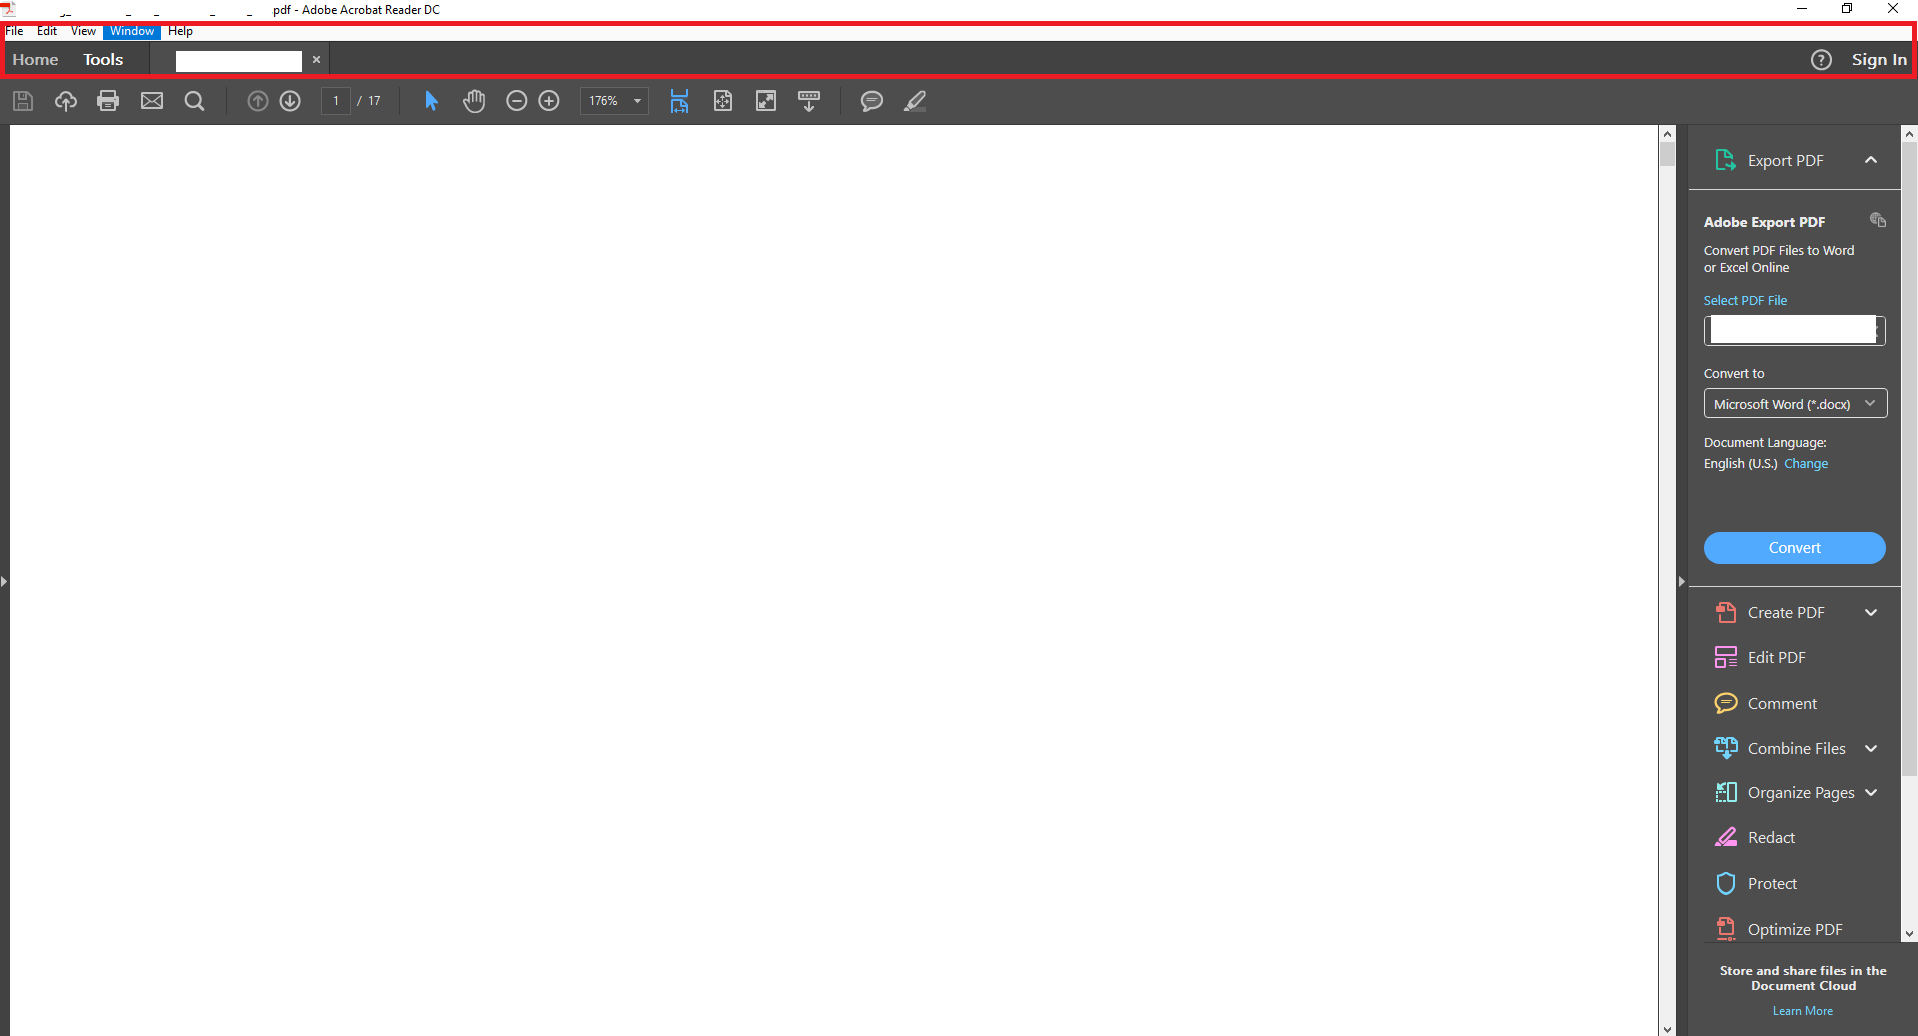 Solved: White bar / box covering options and toolbar - Adobe